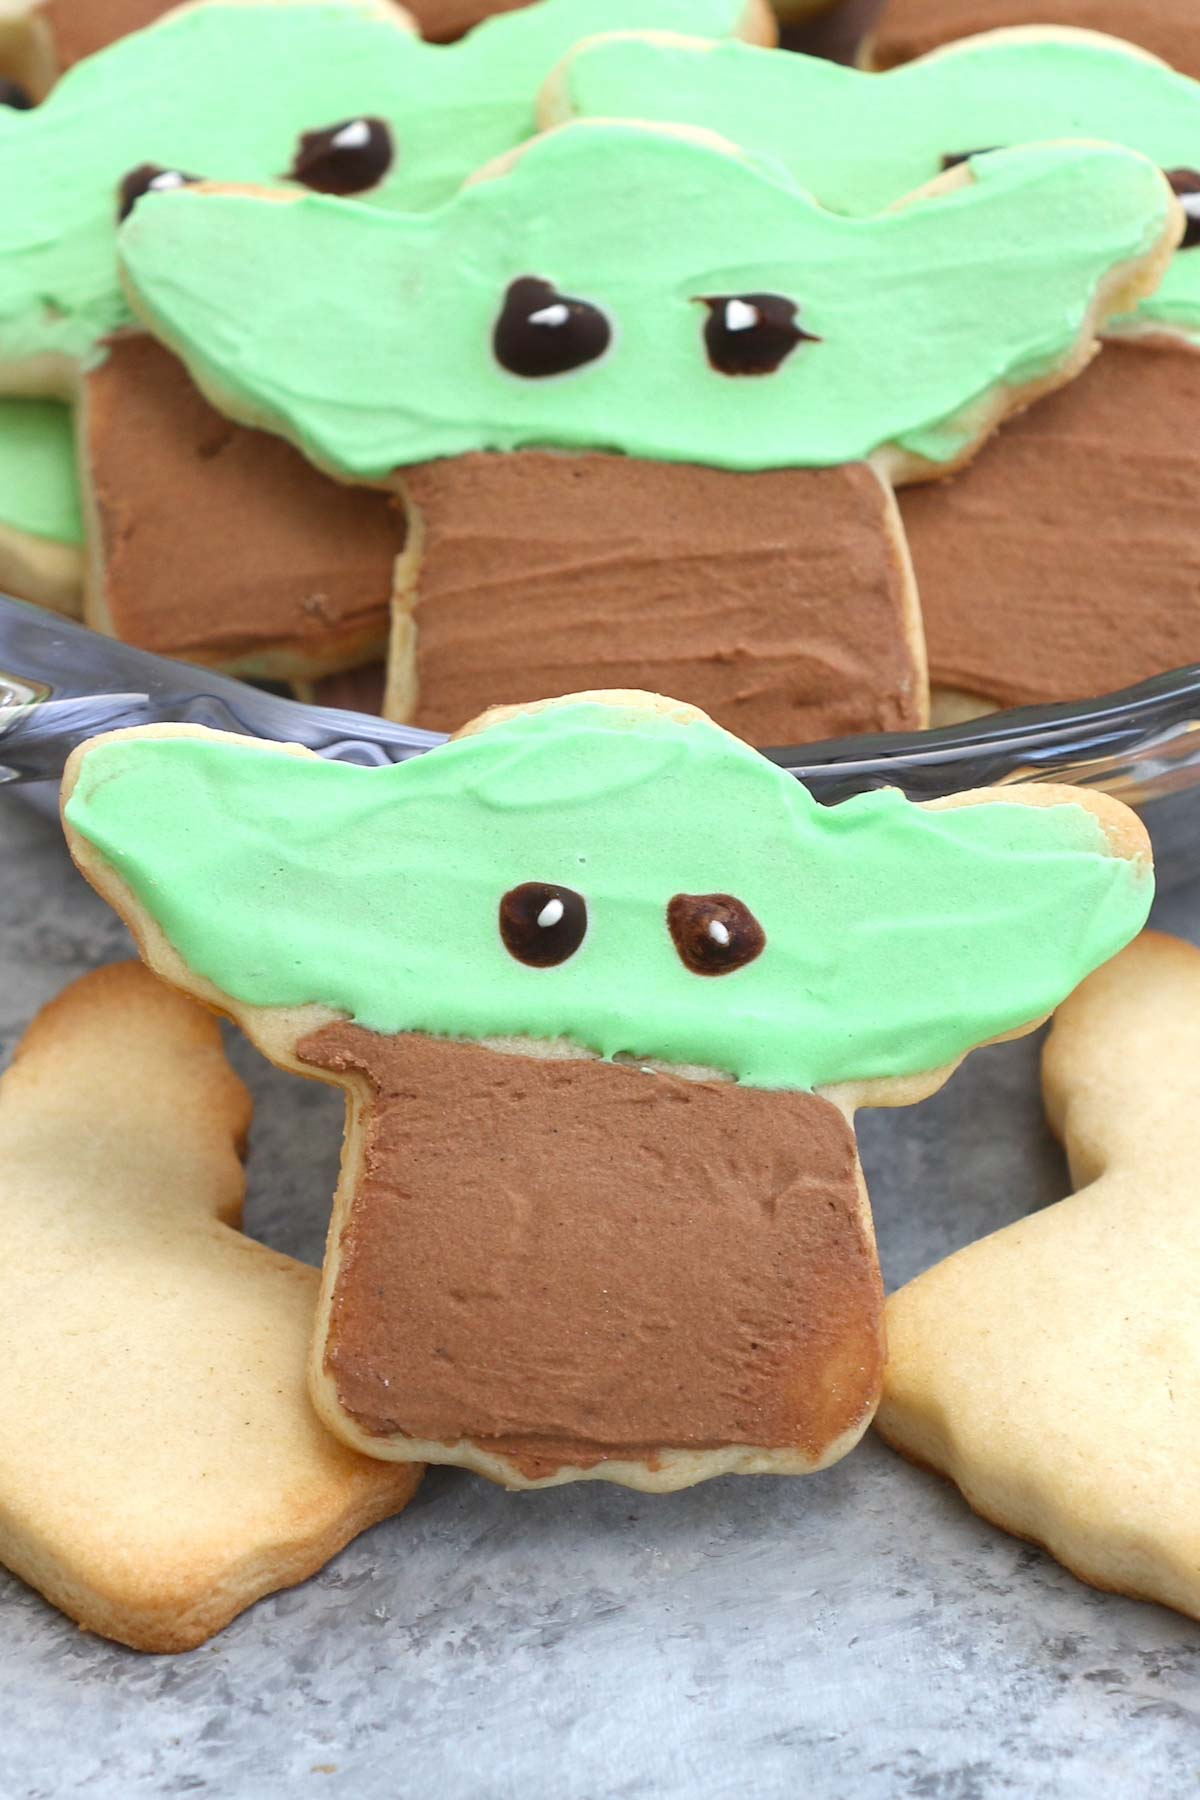 These Baby Yoda Cookies have crisp edges, soft centers, and are decorated with royal icing.  With a simple hack of using a Christmas angel cookie cutter, these adorable sugar cookies are easy to make and look just like the Mandalorian creature when finished. It's all over social media, and popular among Star War fans.